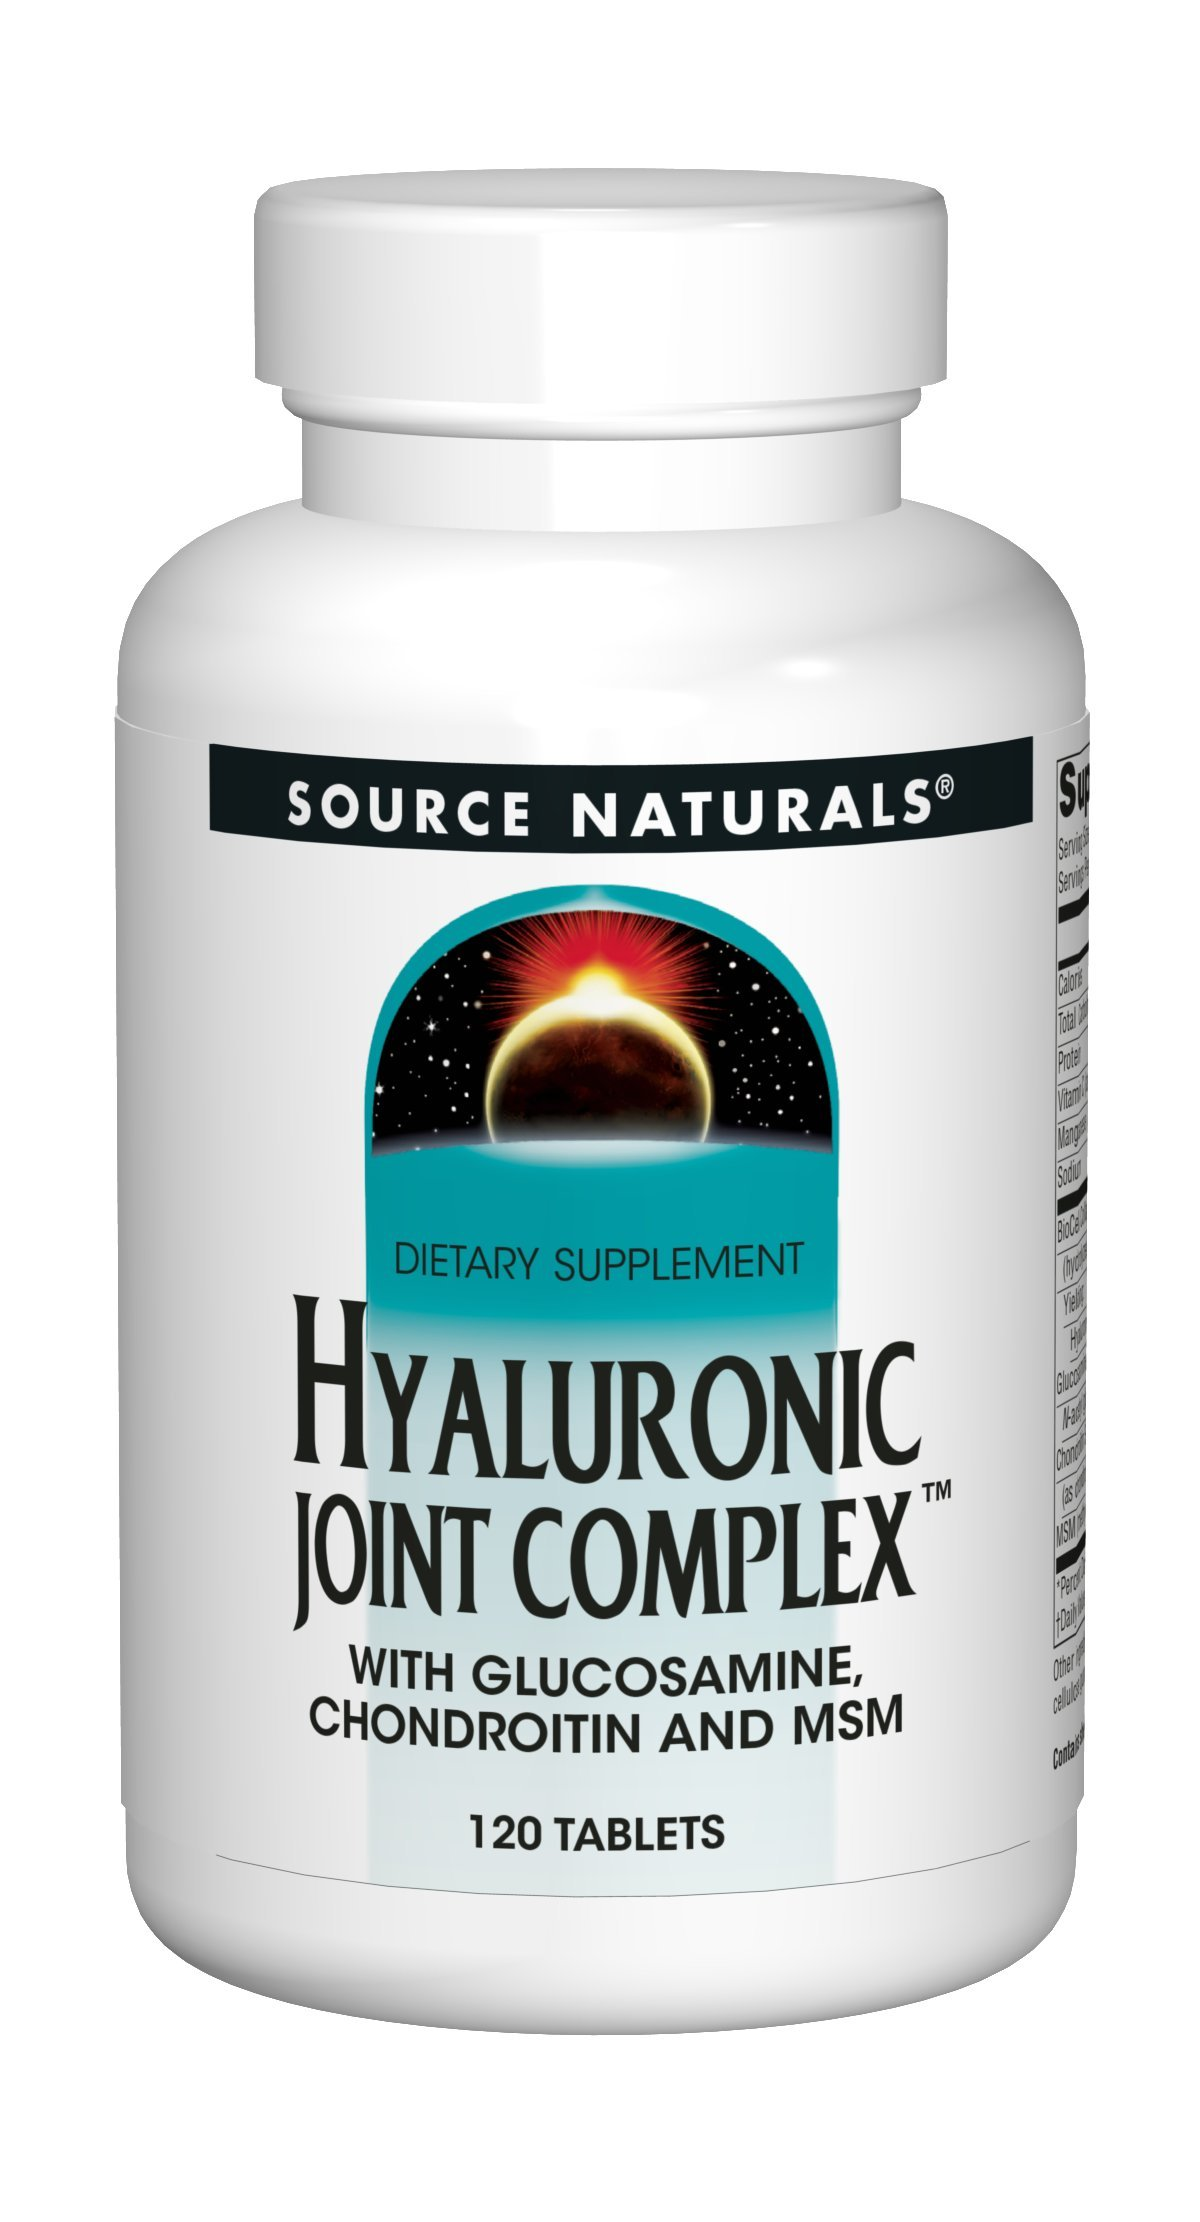 Source Naturals Hyaluronic Joint Complex With Glucosamine, Chondroitin & MSM Extra Strength - 120 Tablets